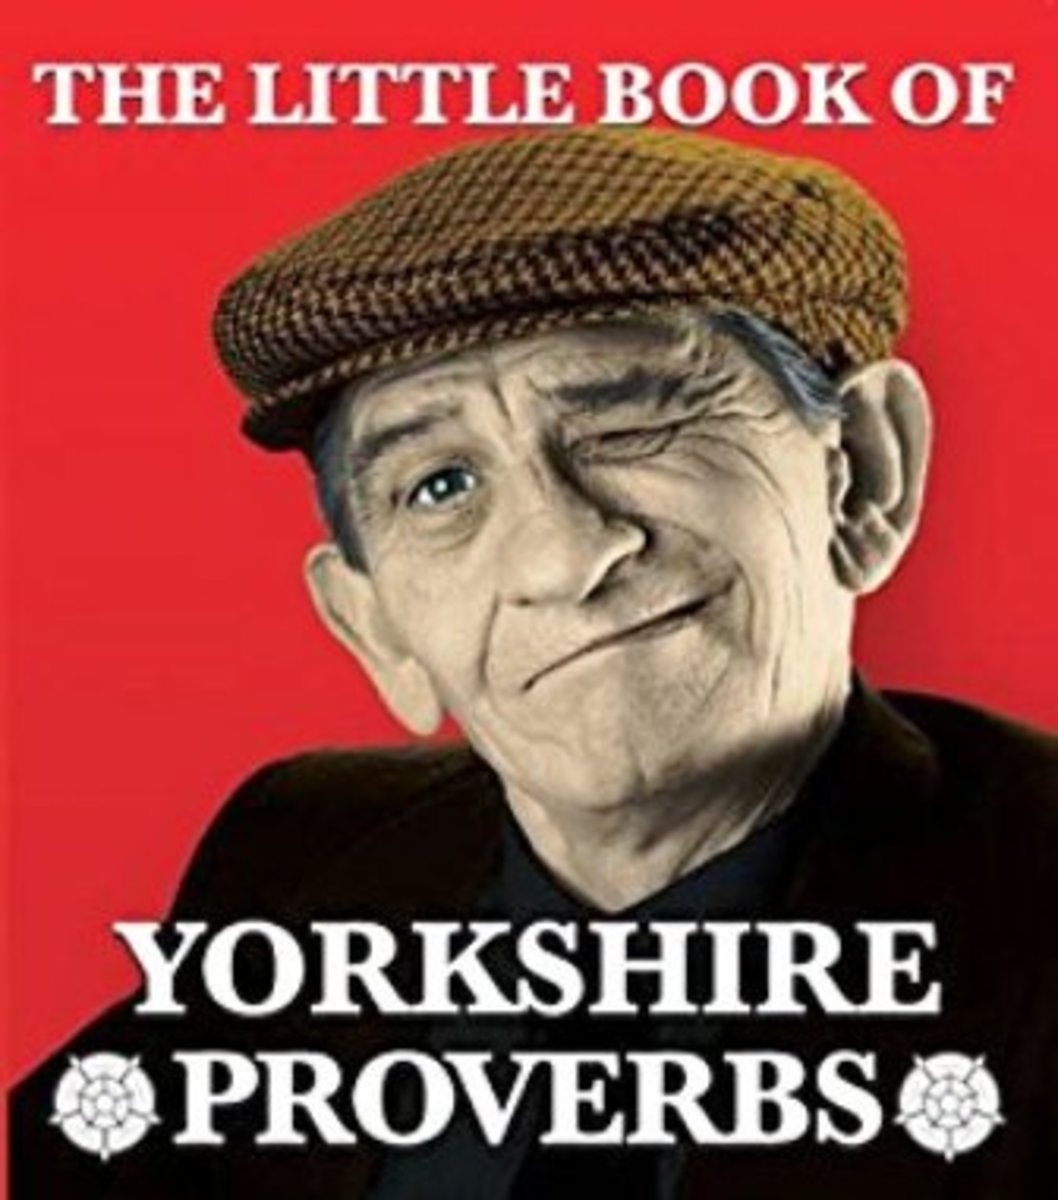 The Little Book of Yorkshire Proverbs, a little something to spice up your life and keep you awake laughing